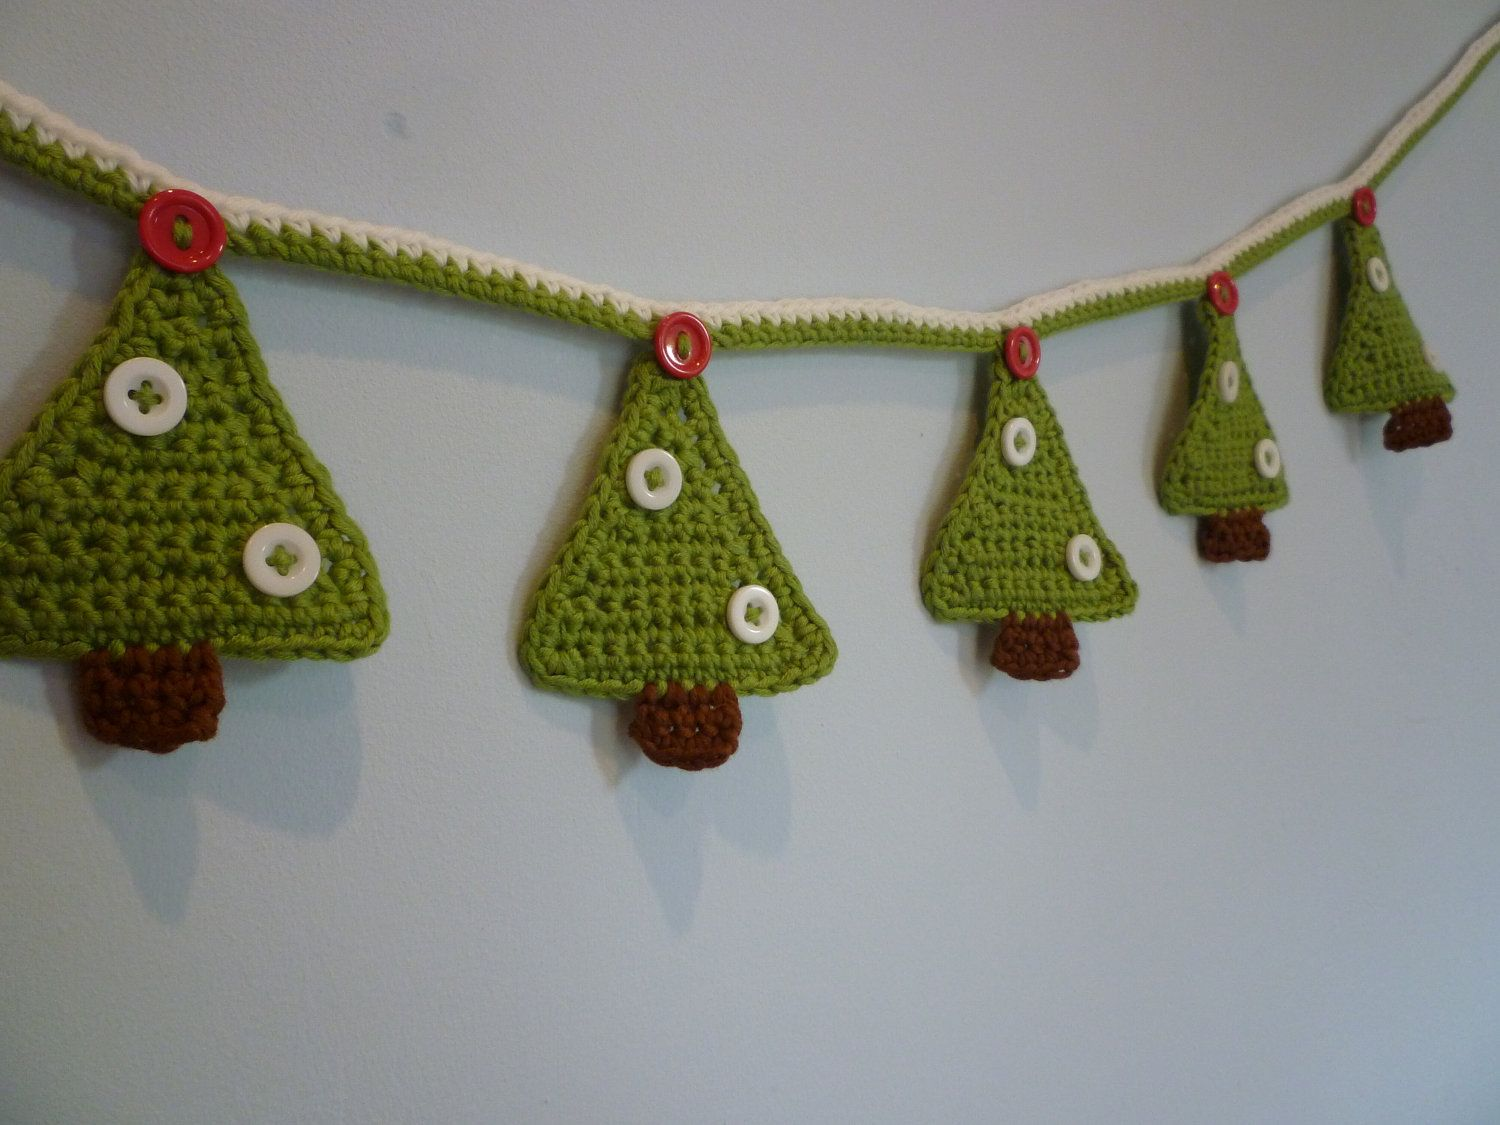 Pin By Teresa Wagner On Crochet Bunting Christmas Crochet Handmade Christmas Handmade Christmas Tree